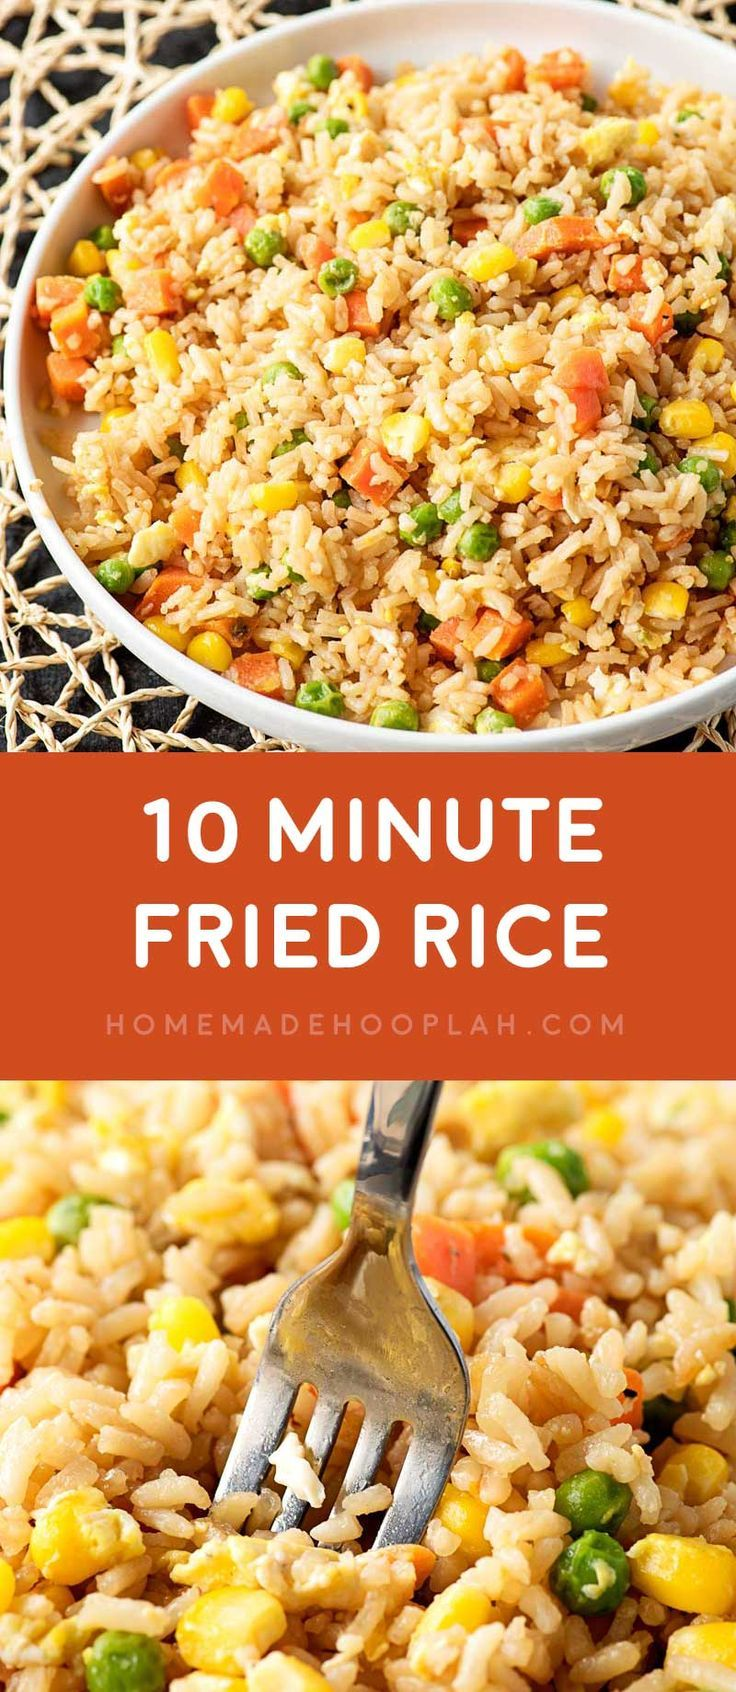 10 minute fried rice need a new go to side dish for busy weeknights 10 minute fried rice need a new go to side dish for busy weeknights fried rice is always a great staple and this easy recipe makes it easy to whip up in ccuart Choice Image